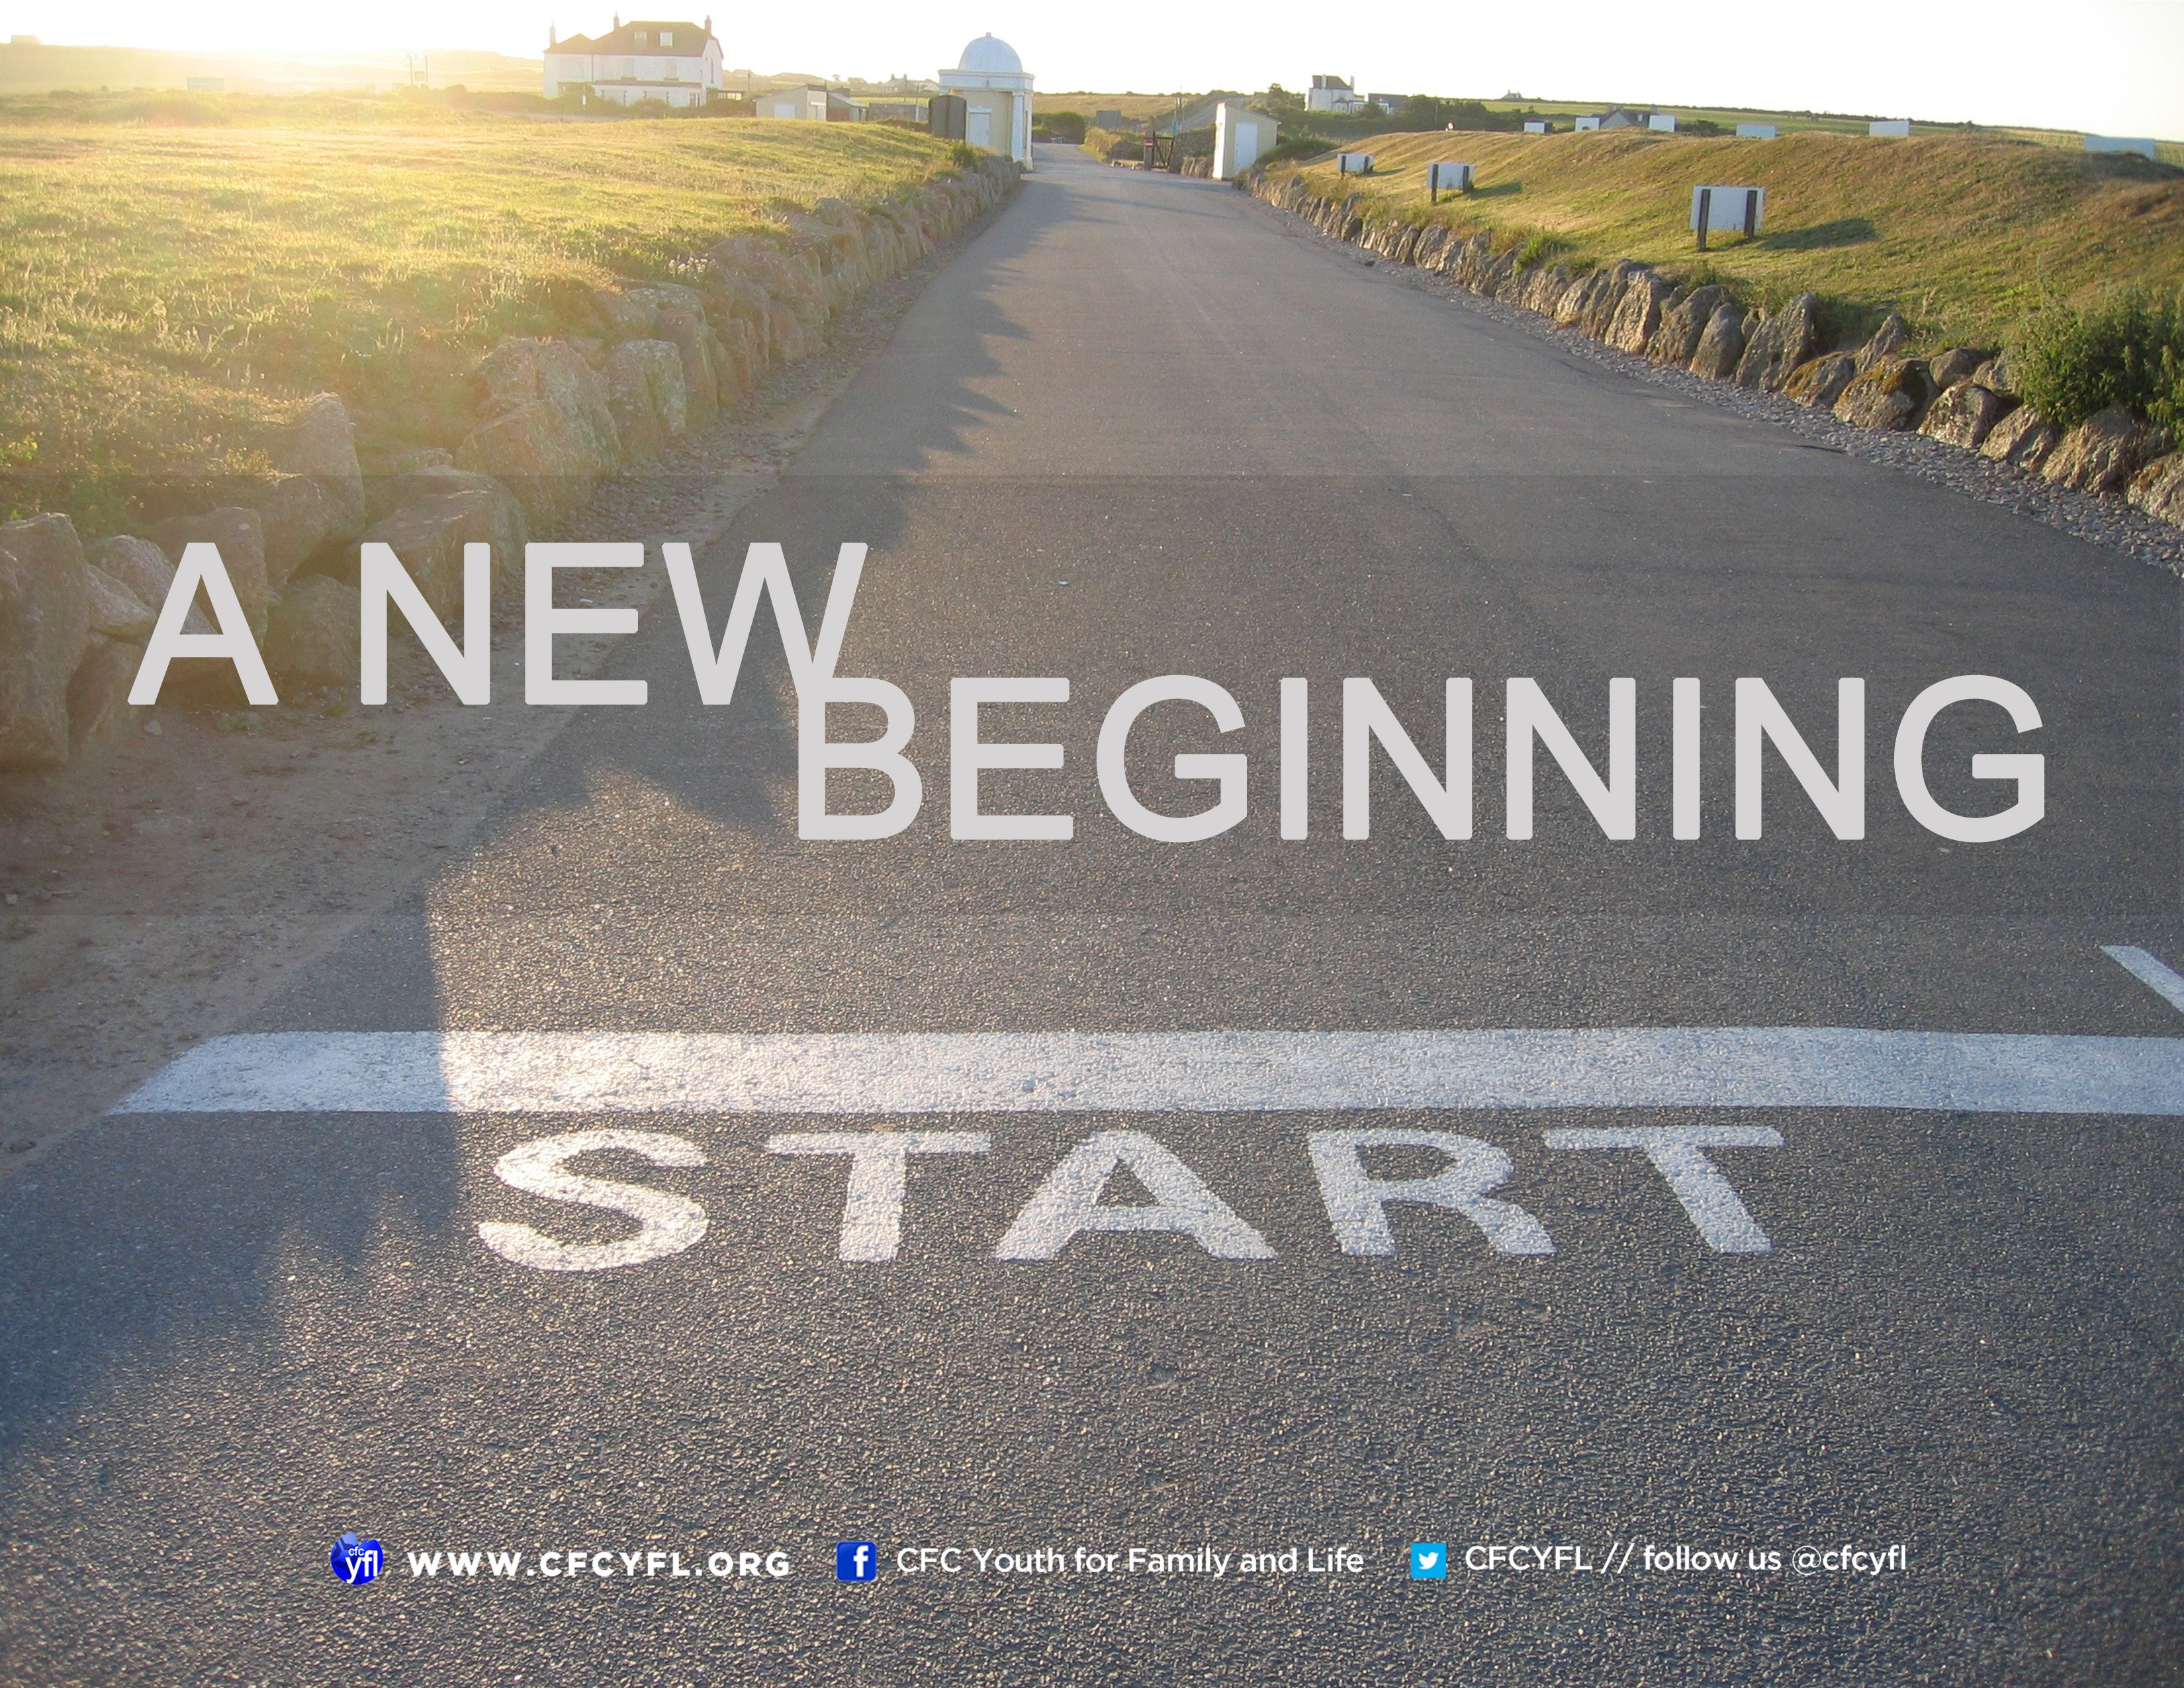 New Beginning Quotes And Sayings. QuotesGram